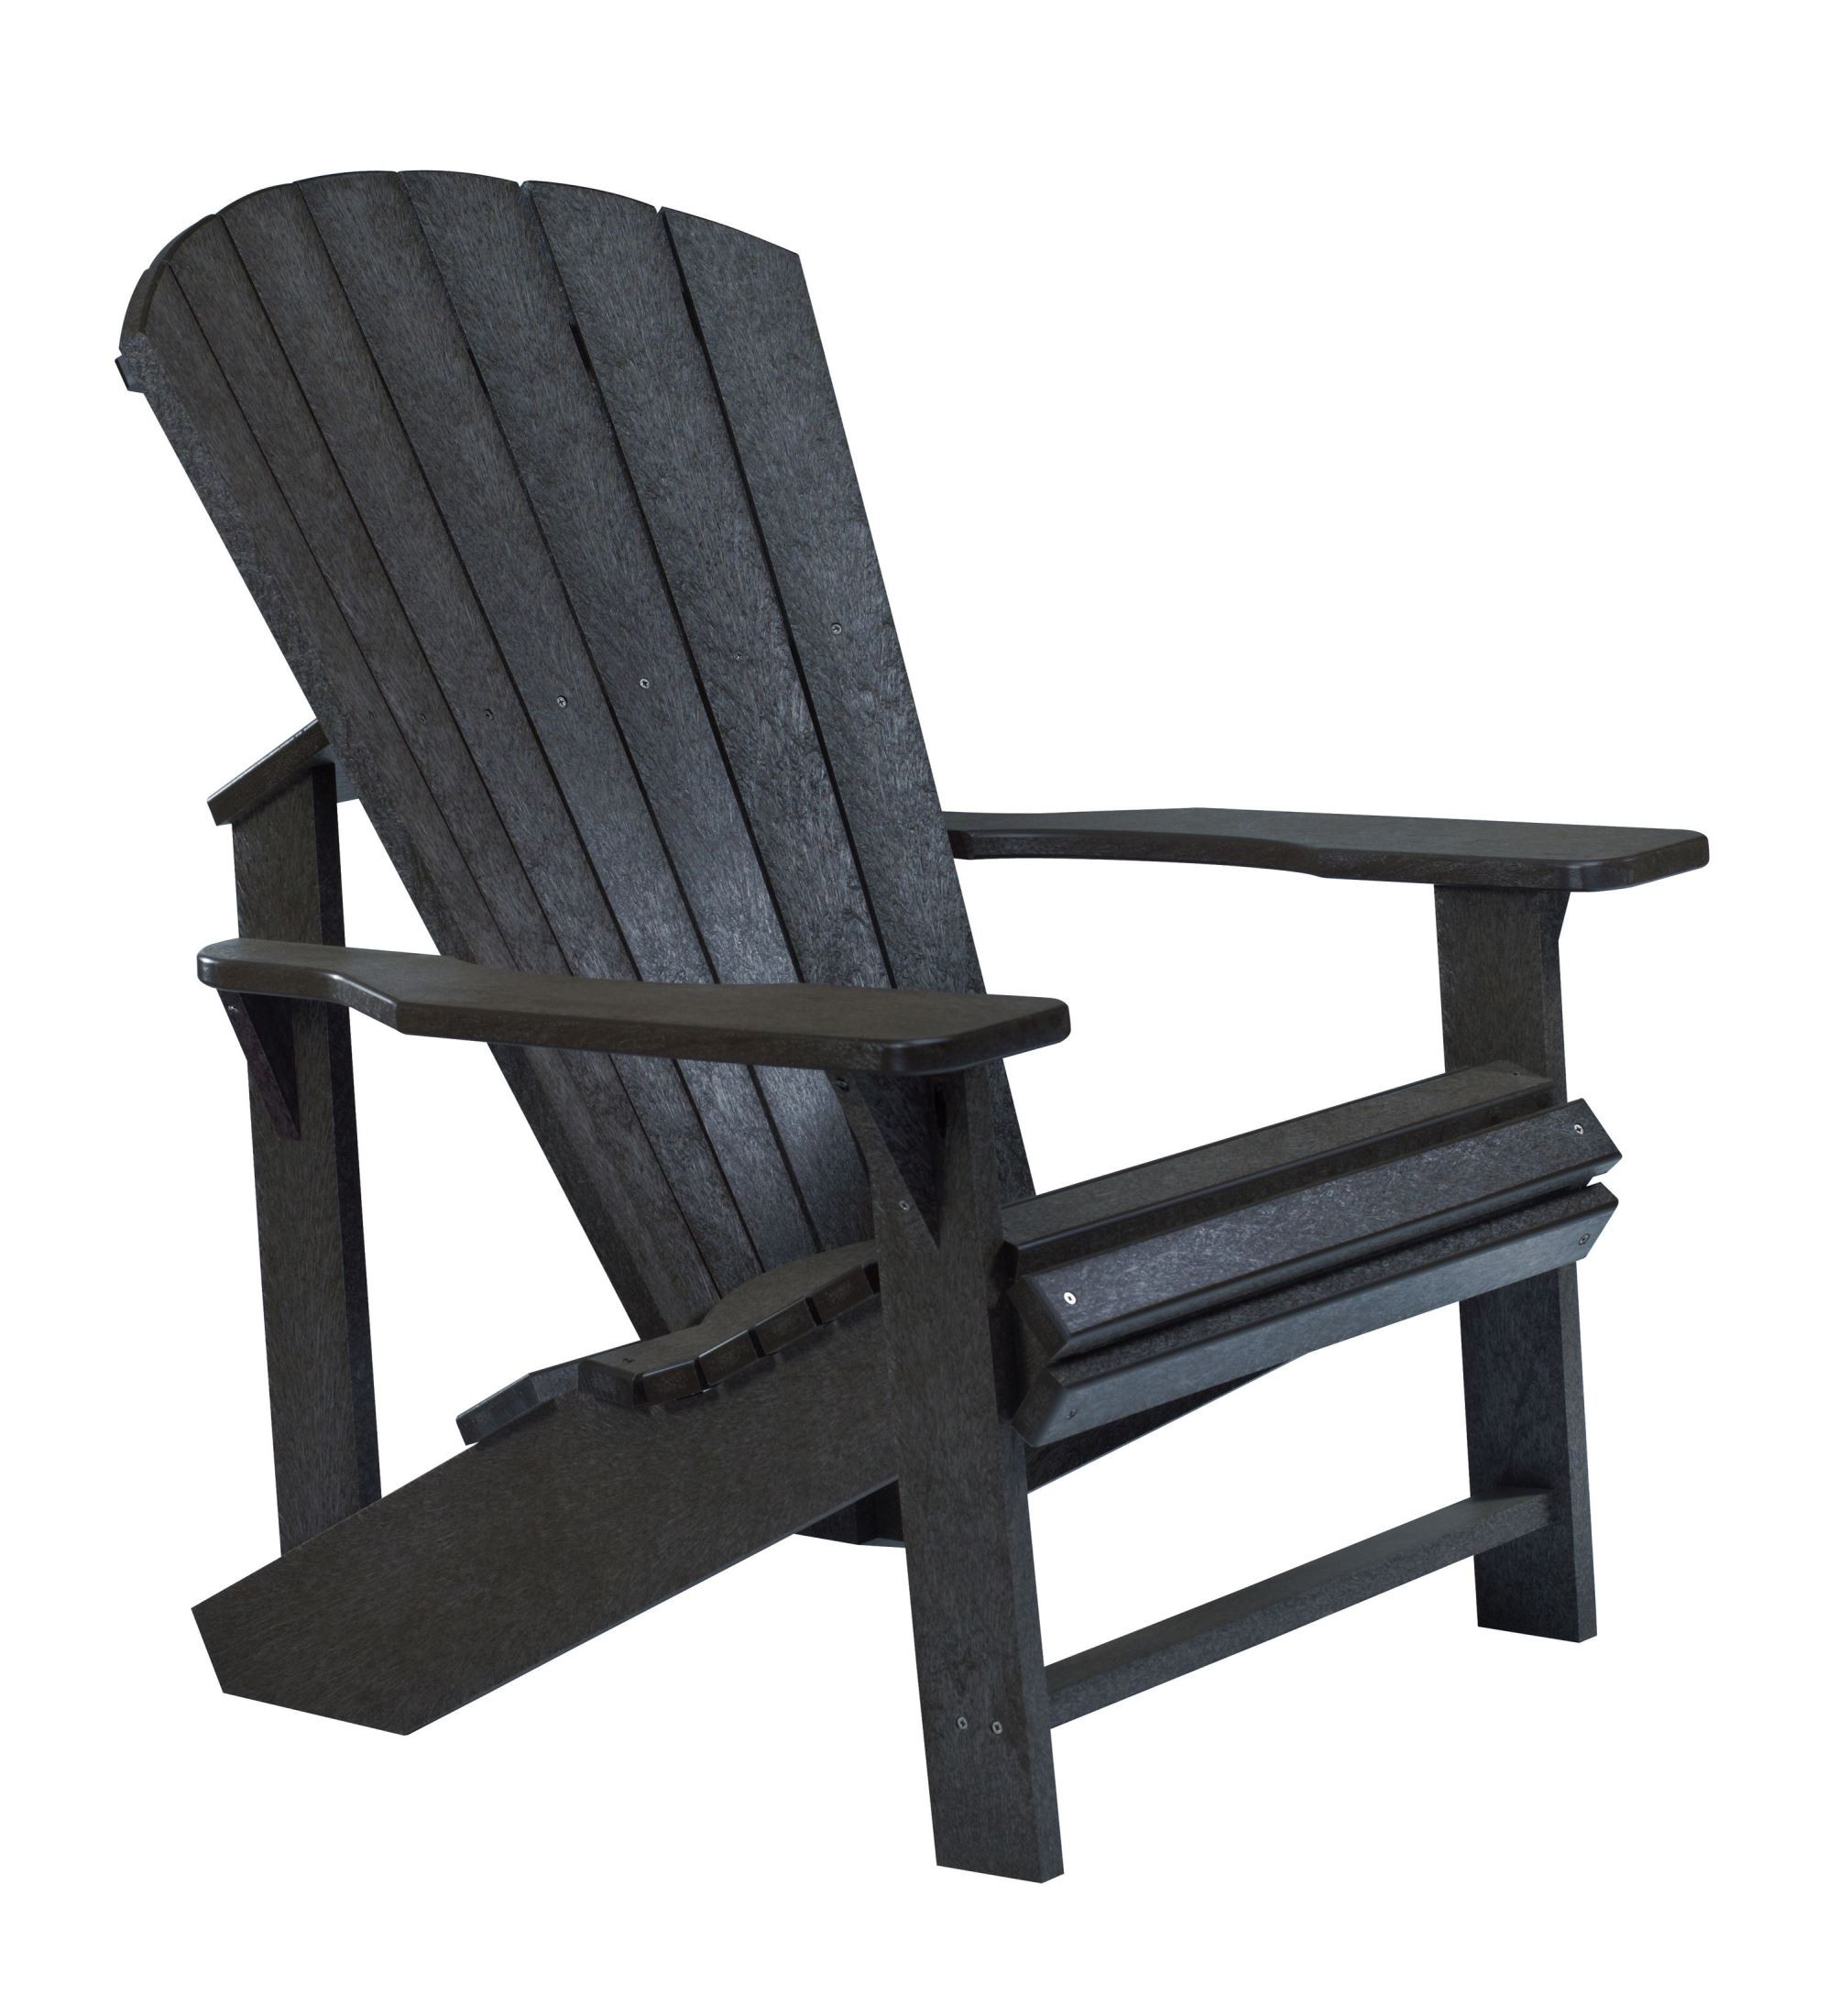 Generations Black Adirondack Chair From Cr Plastic C01 14